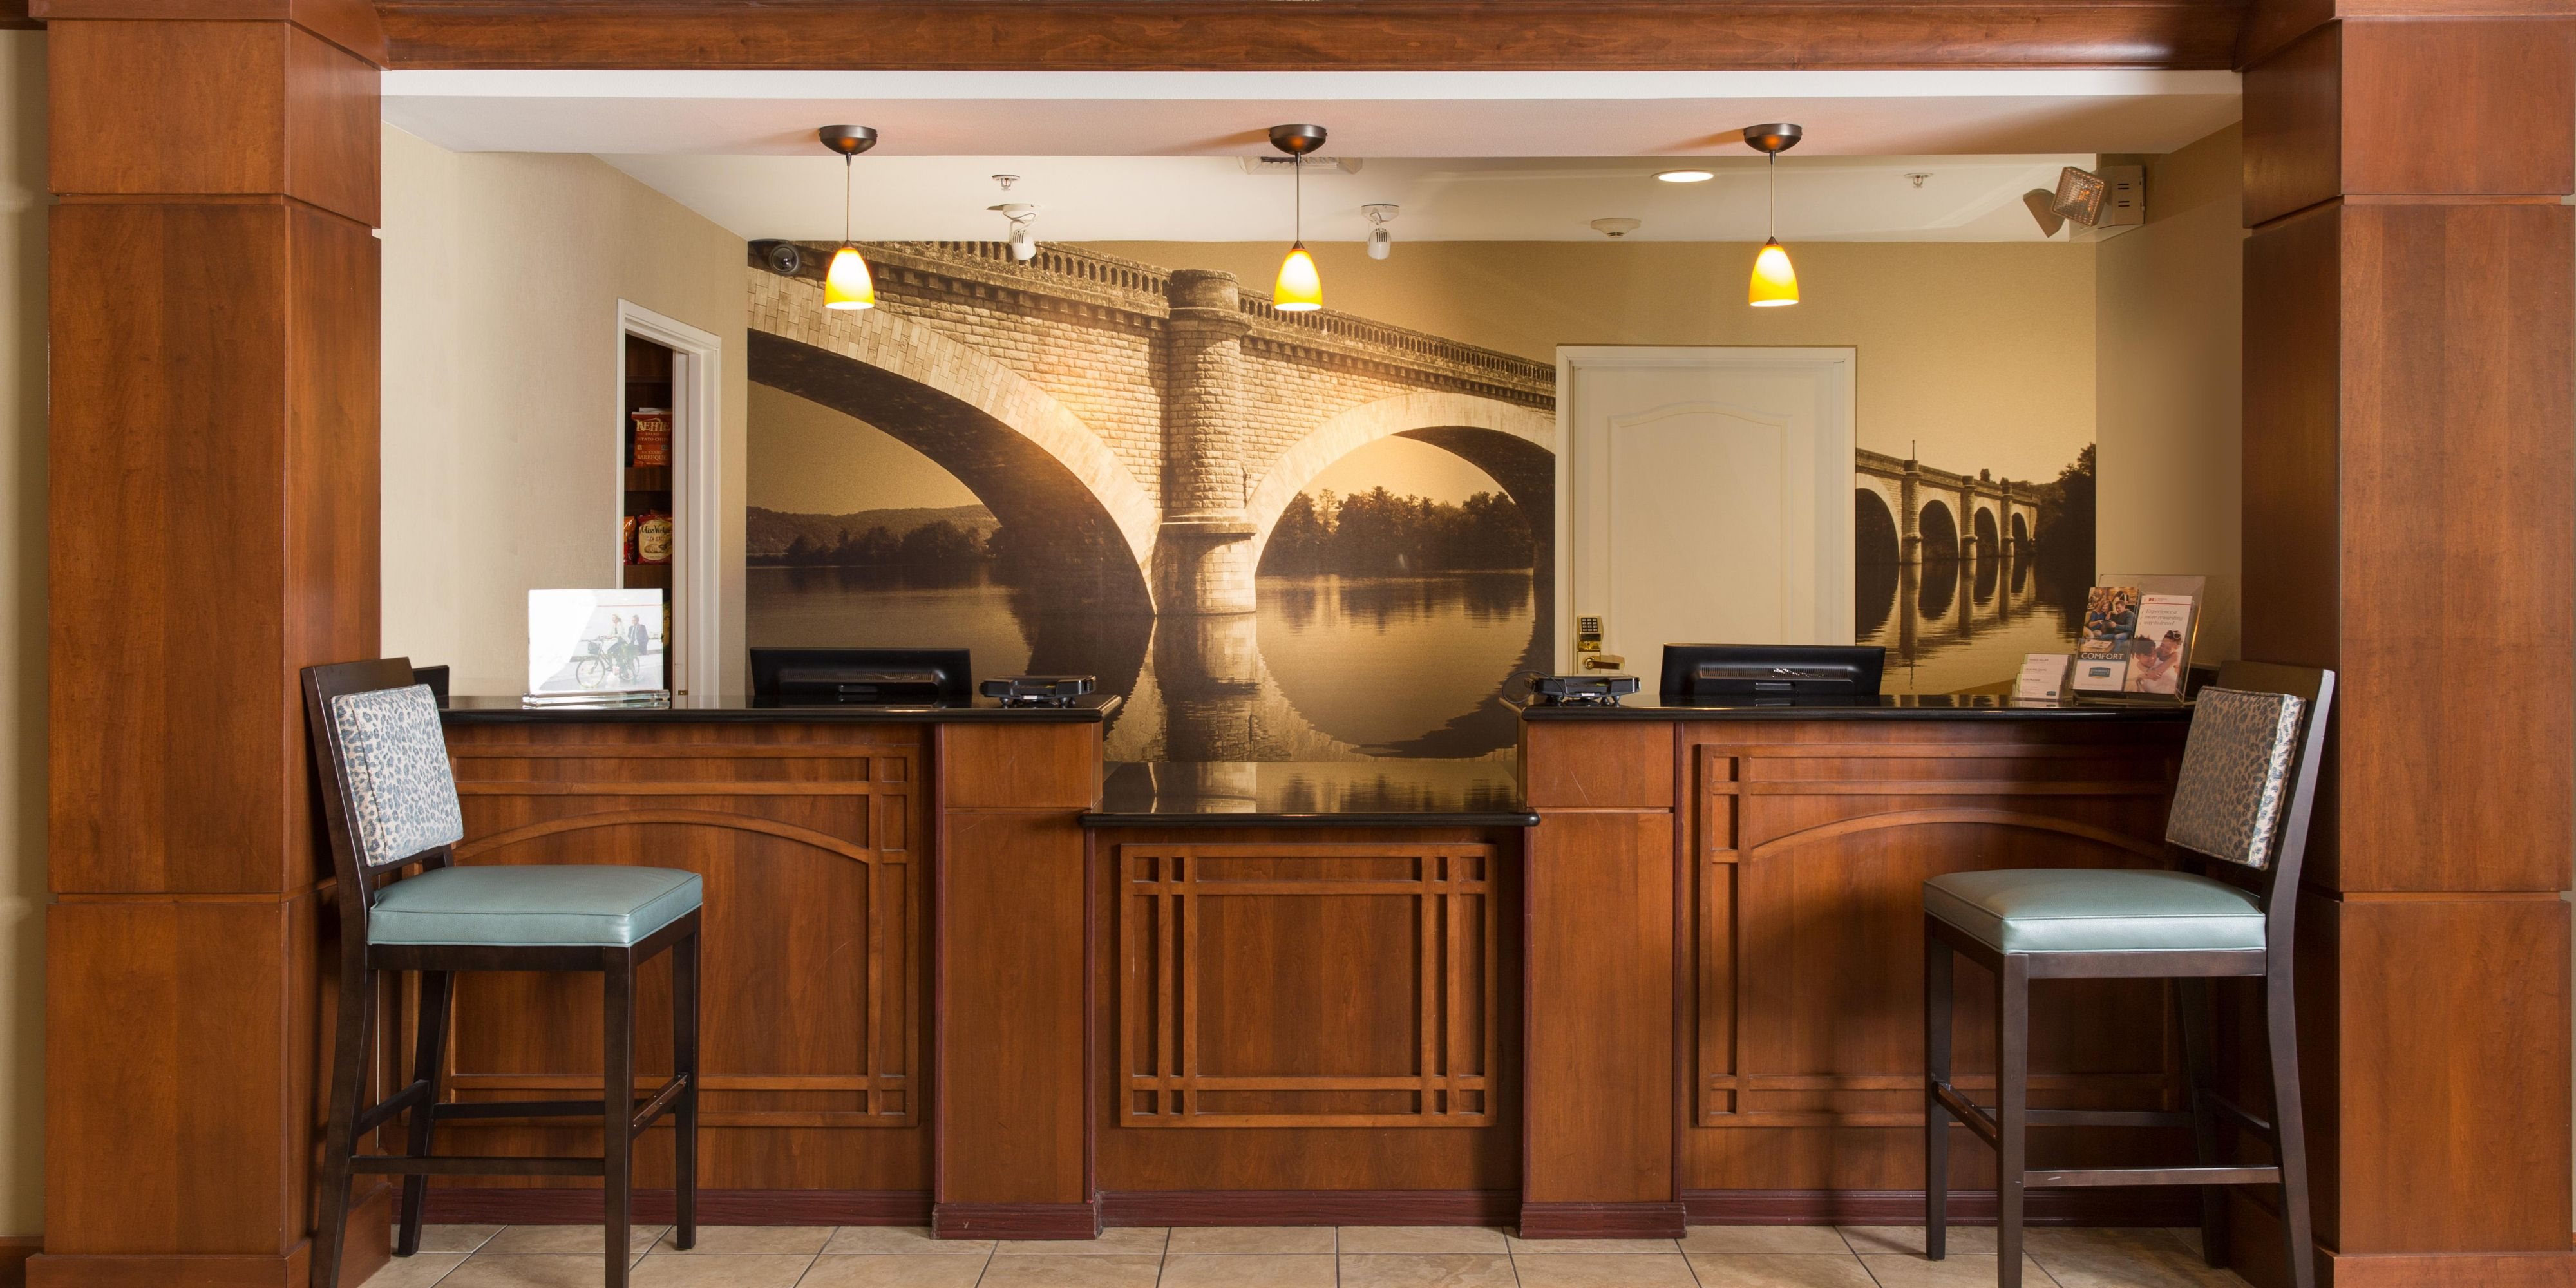 Staybridge Suites Sacramento Airport Natomas - Sacramento, California